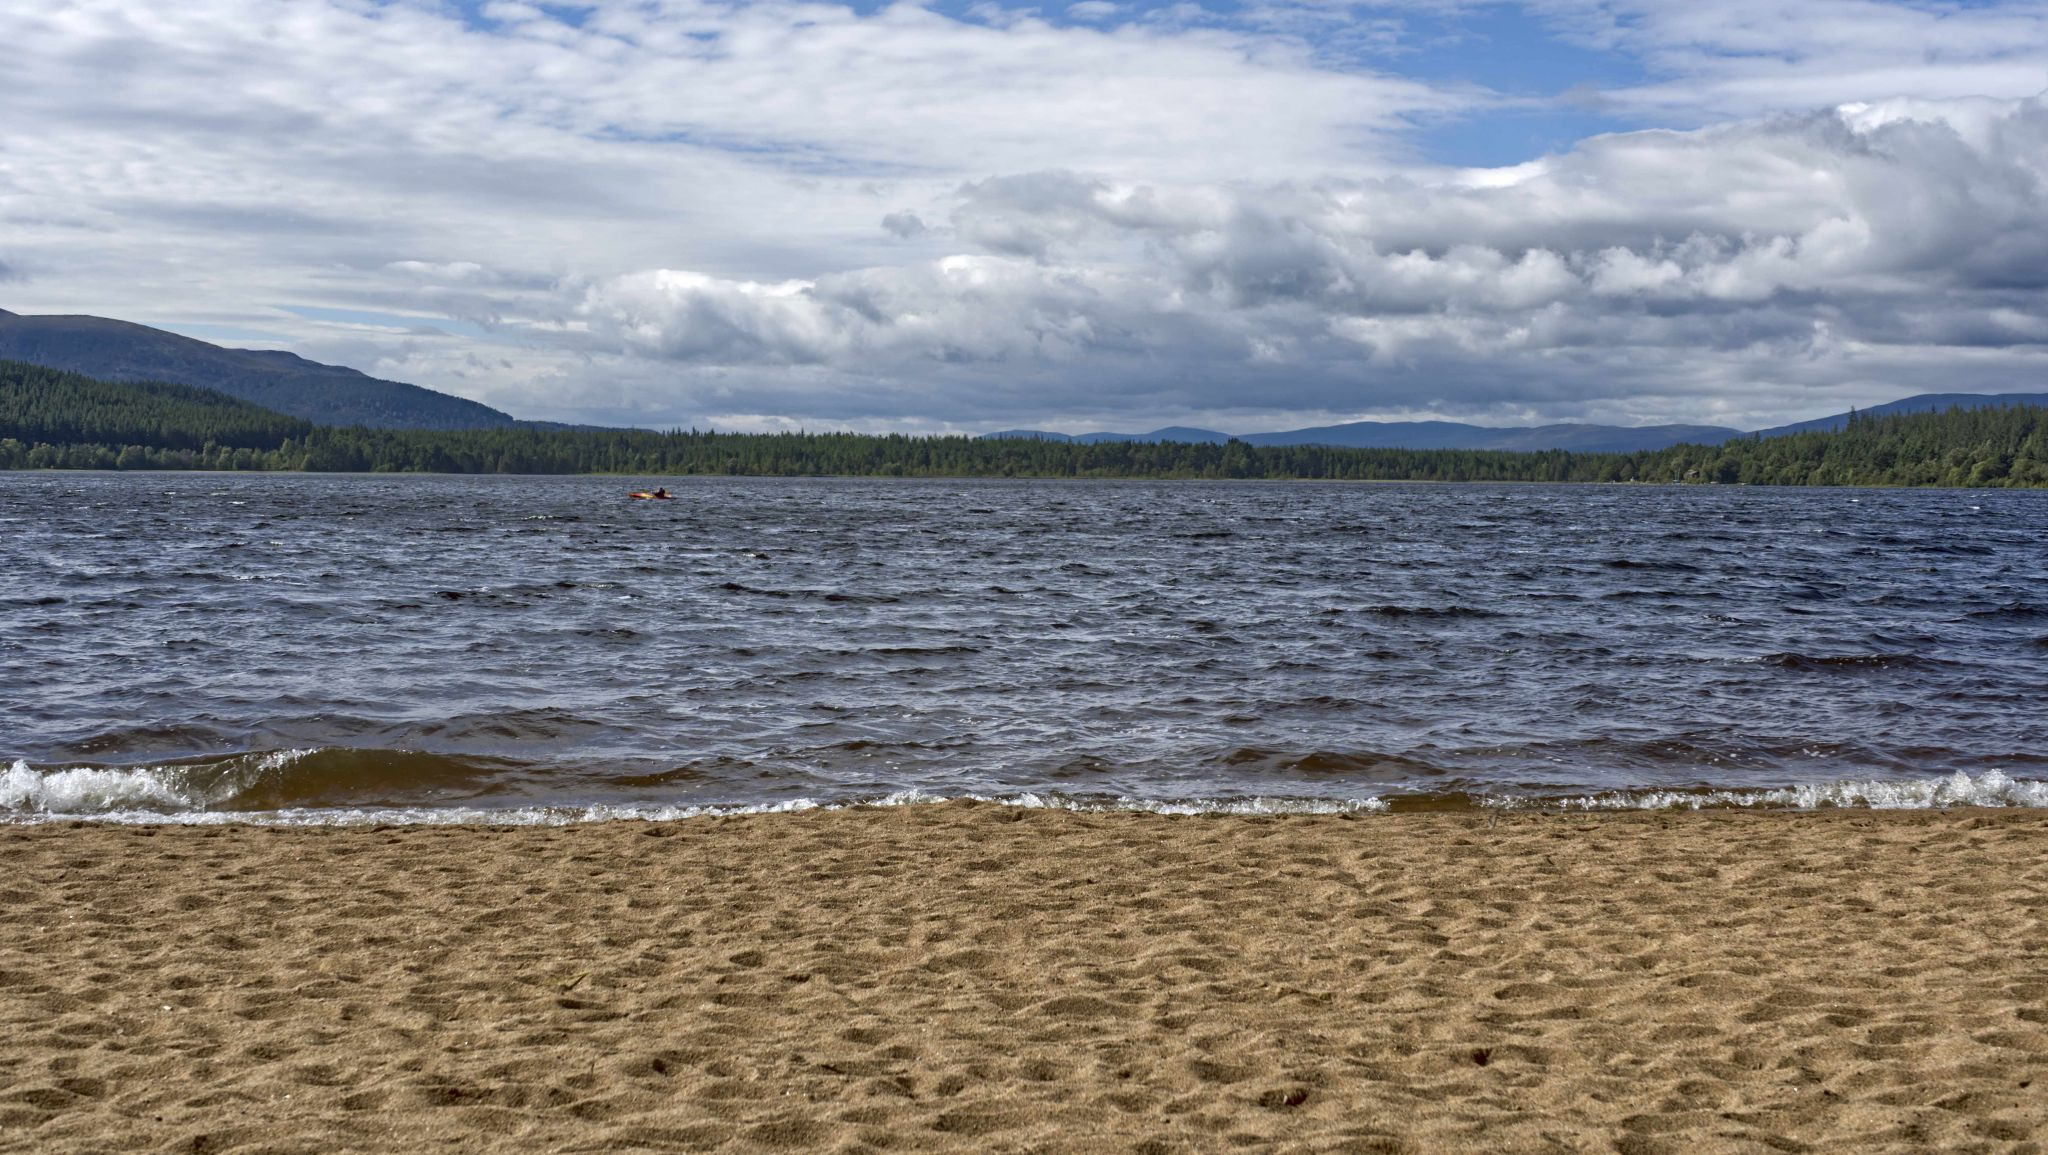 Loch Morlich from the beach, United Kingdom